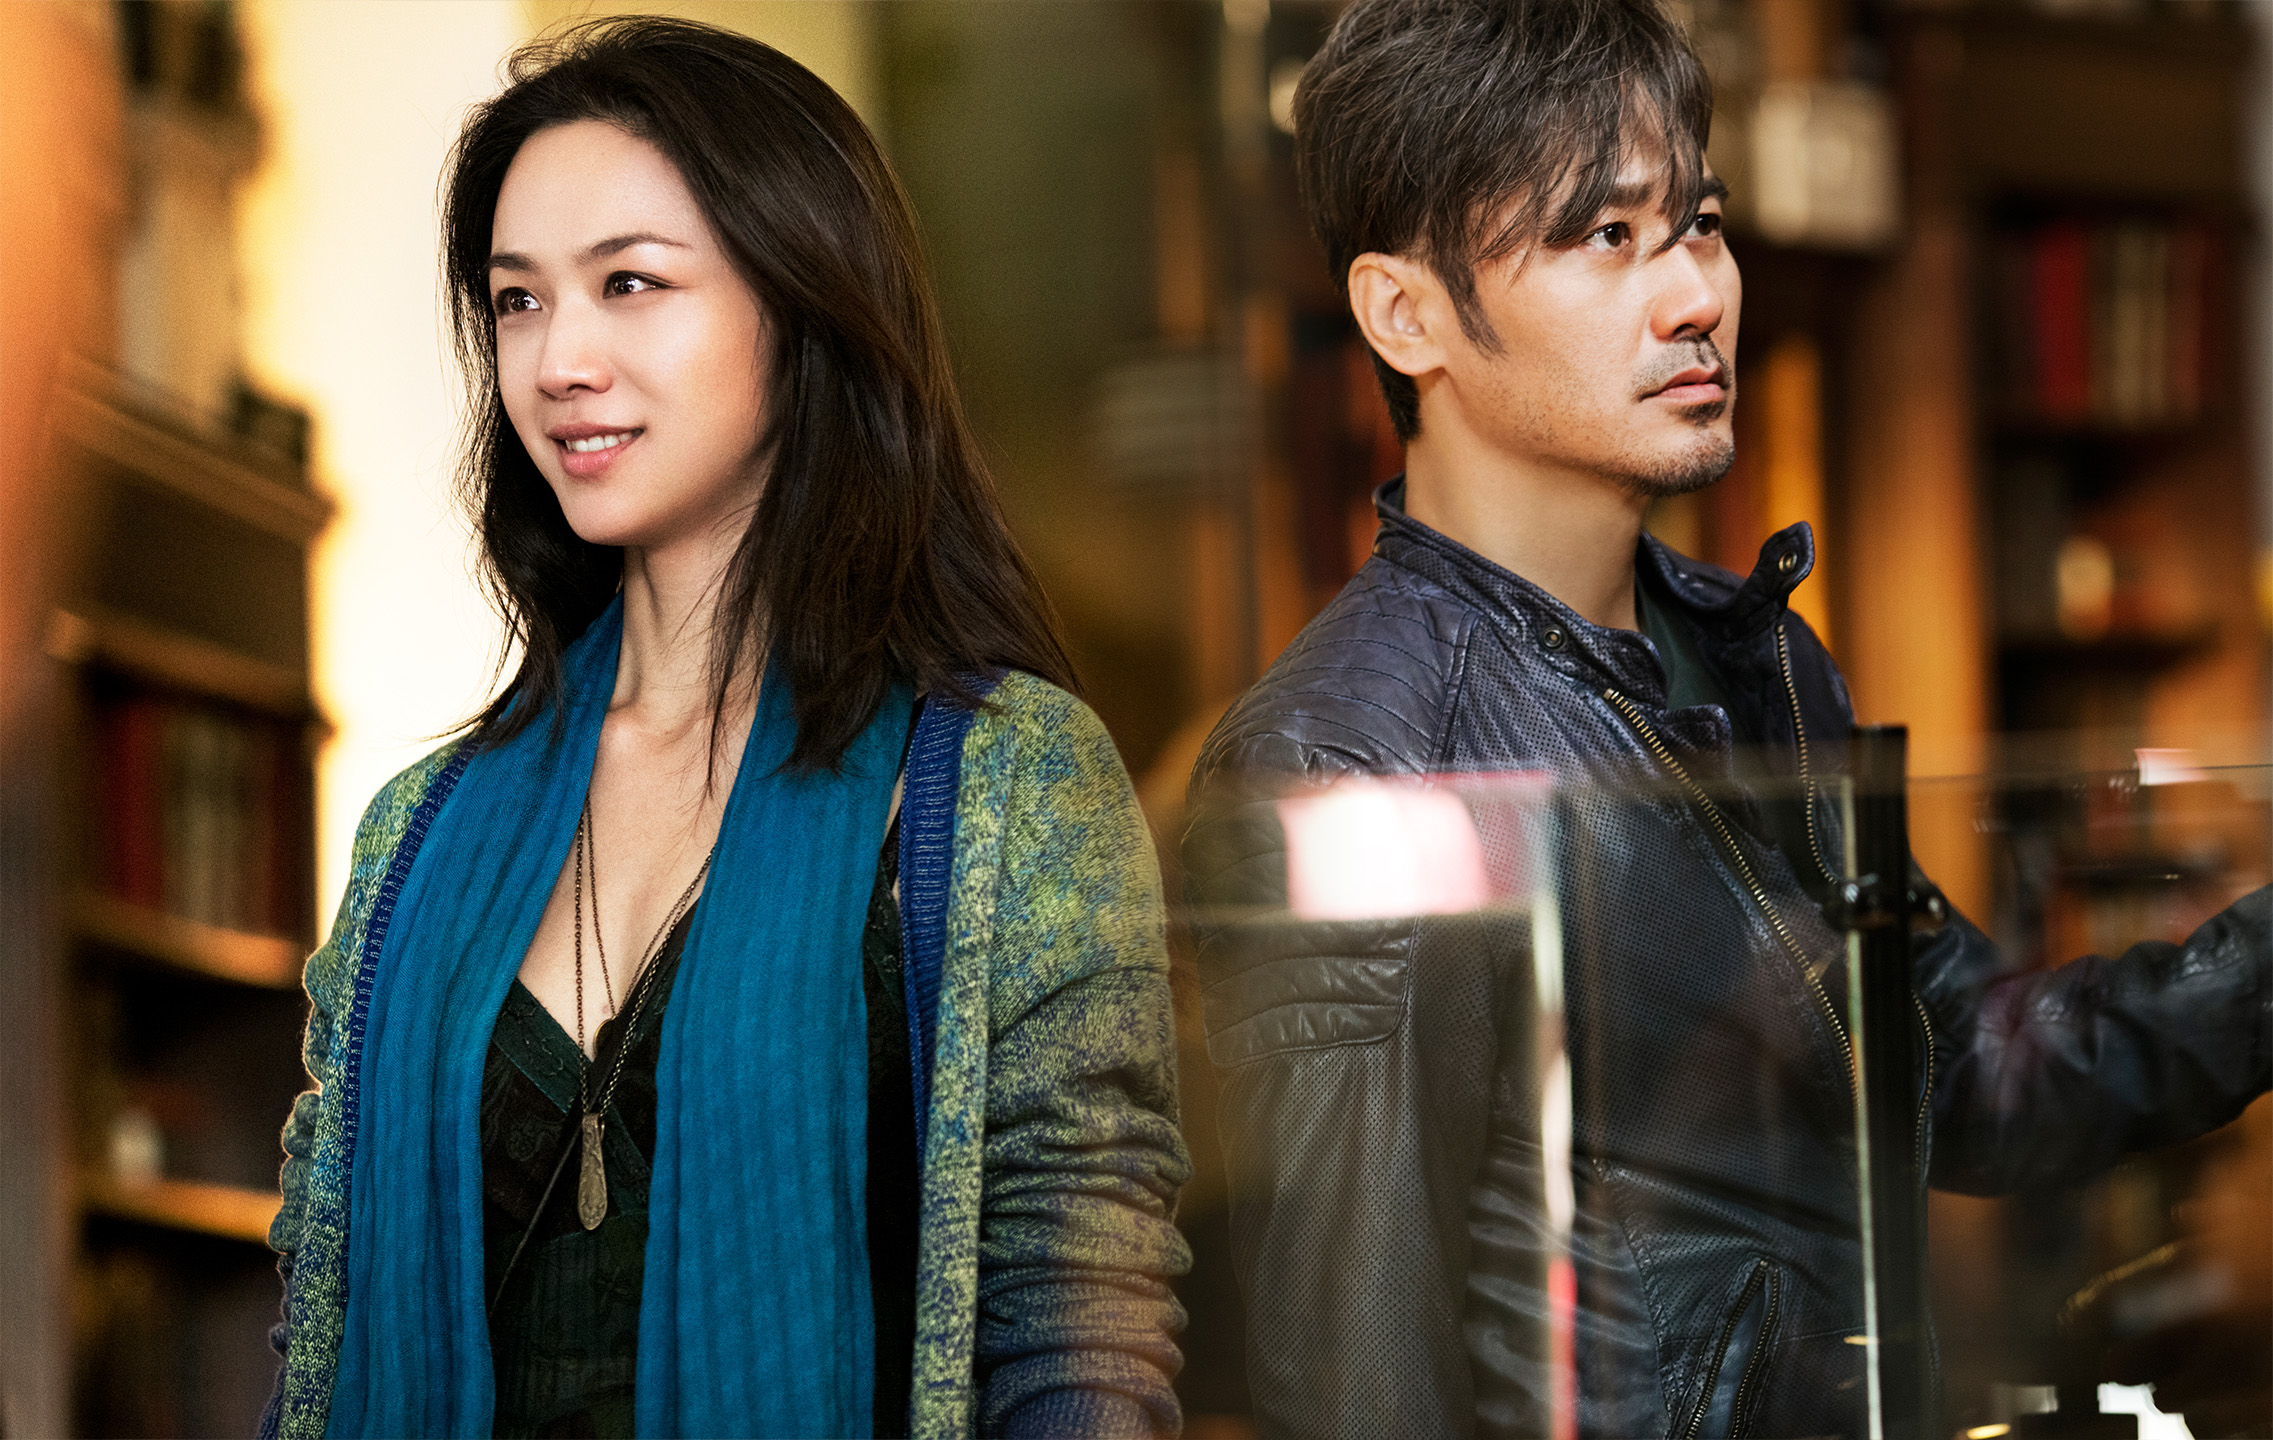 """Finding Mr Right 2"" set to premiere in Australian cinemas on 29th April"